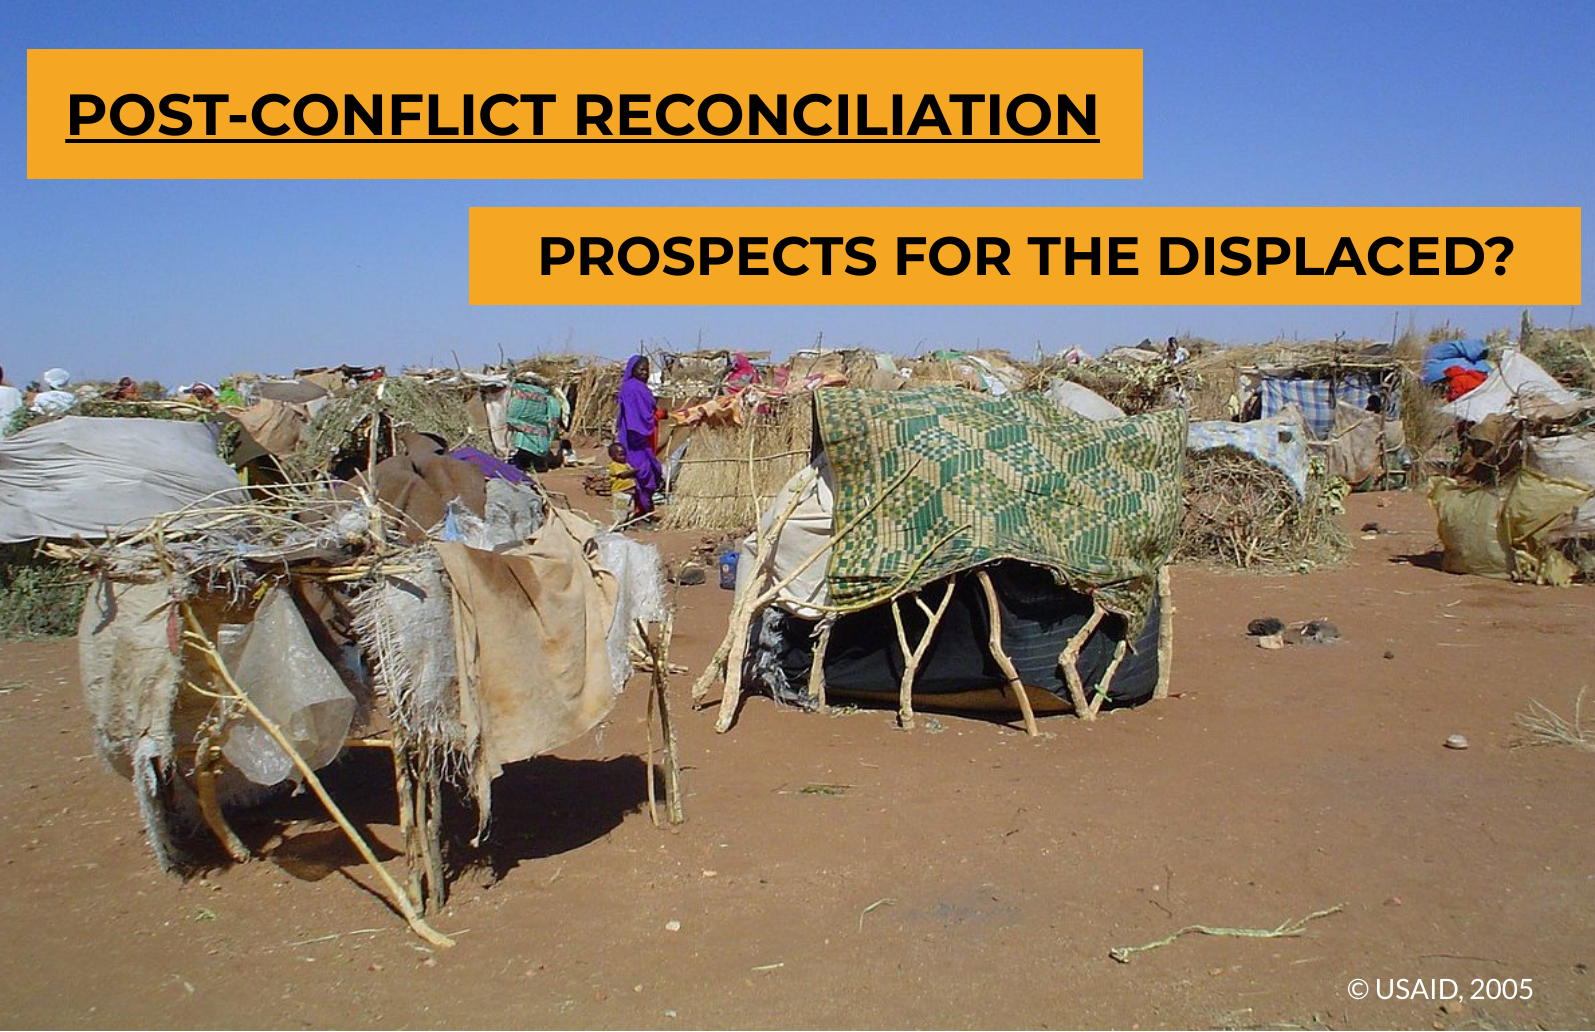 https://www.sihma.org.za/photos/shares/post-conflict-r_49707680 (1).png